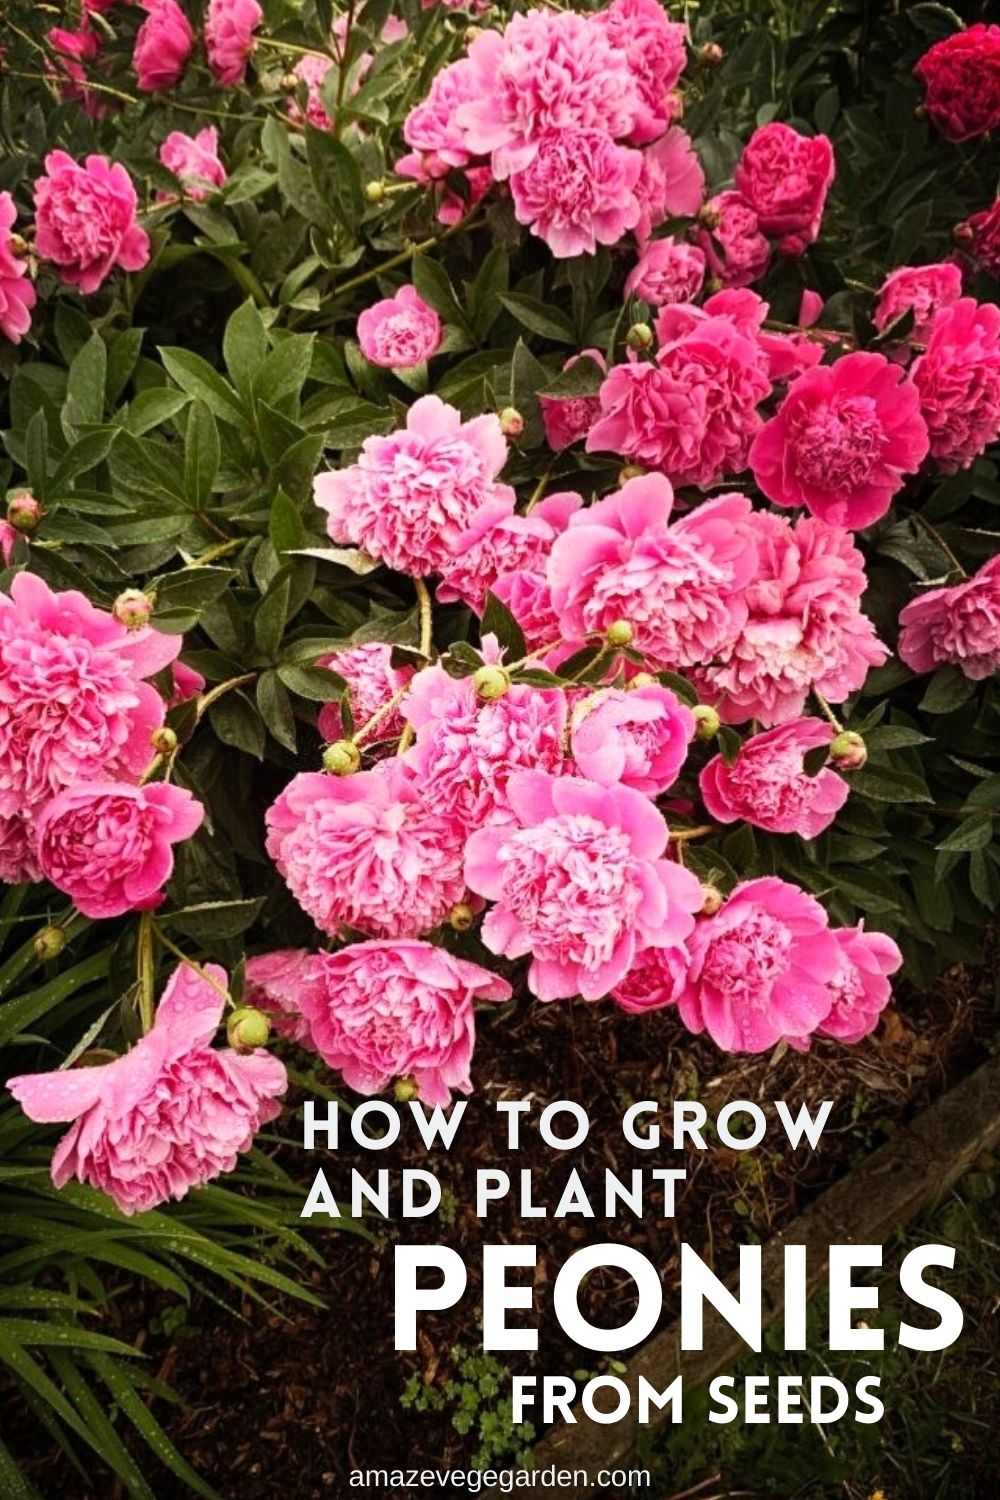 How To Grow and Plant Peonies From Seeds